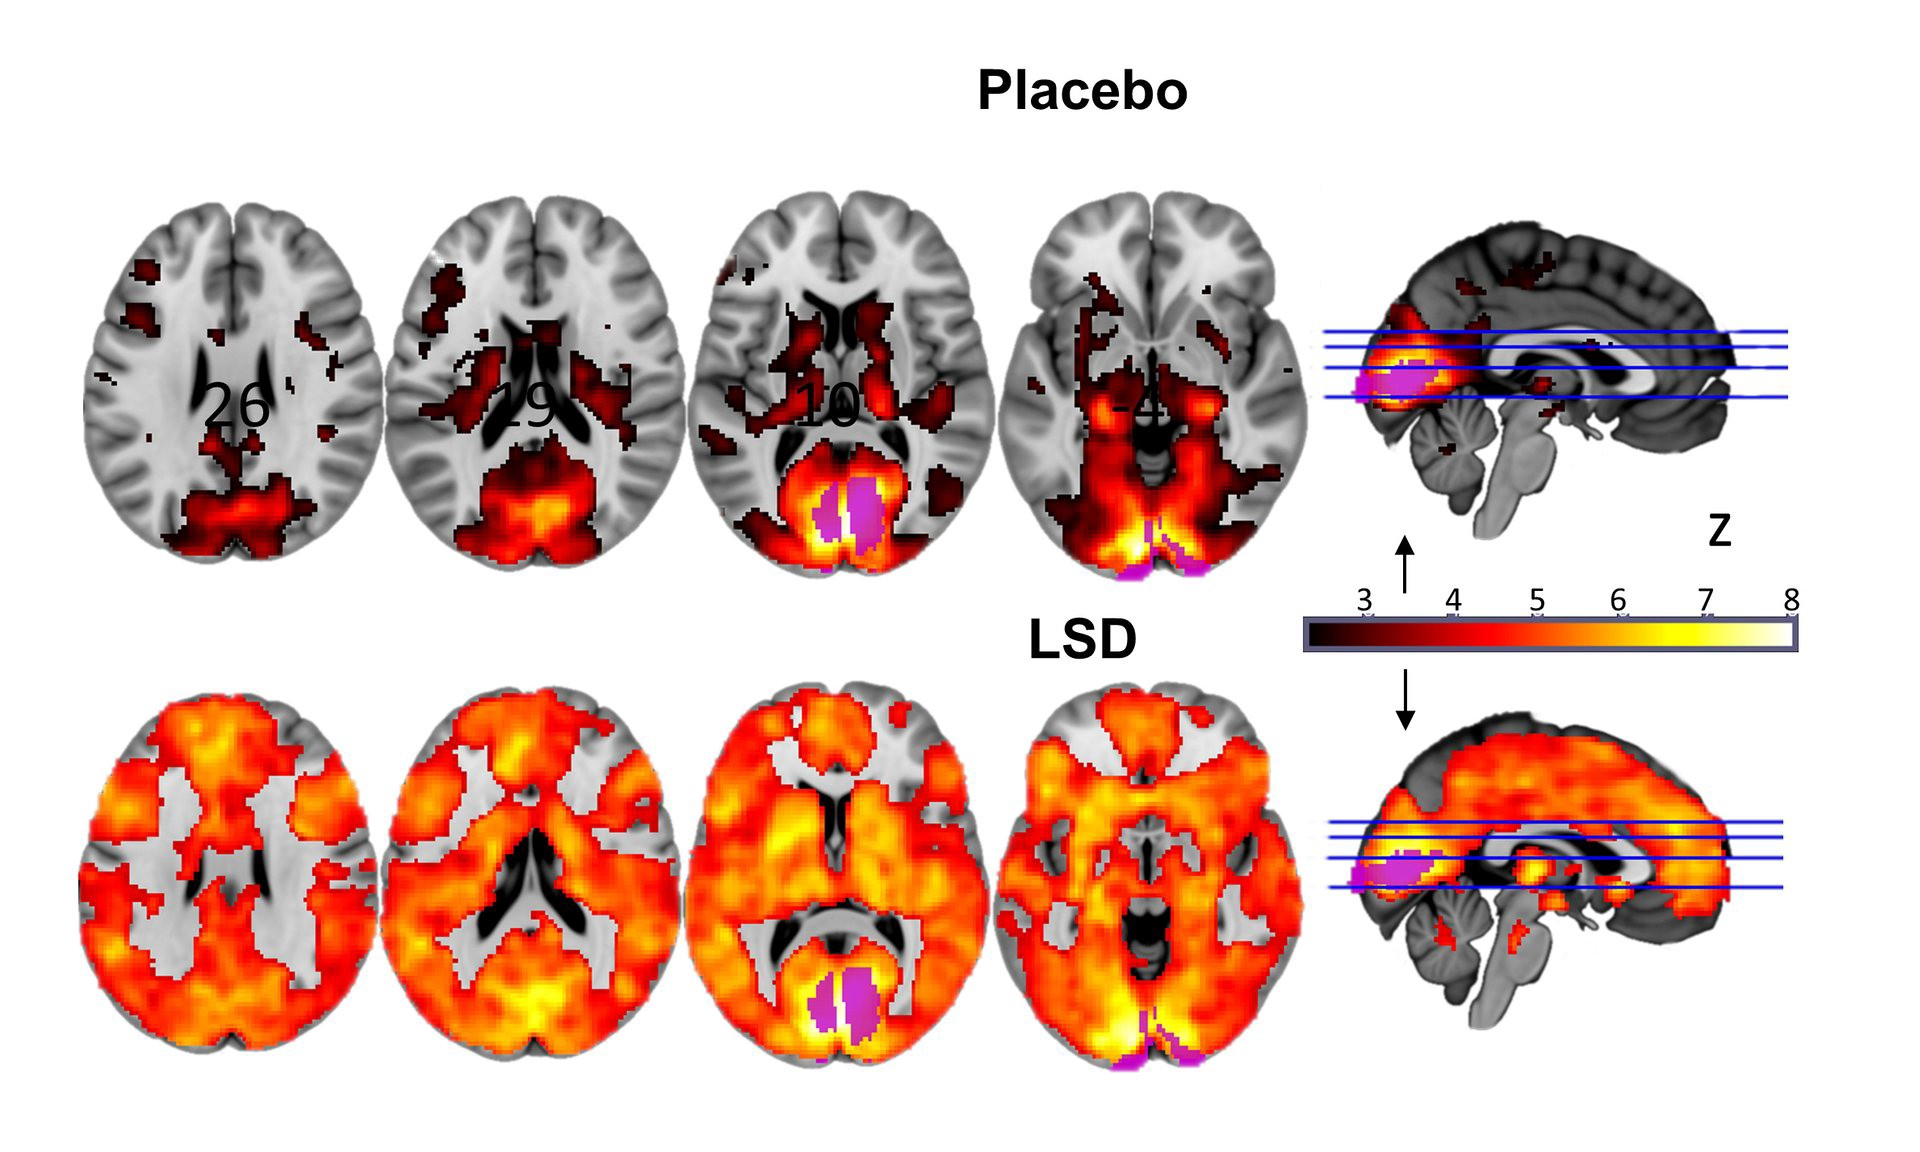 The times when all the LSD in the world were made by one person